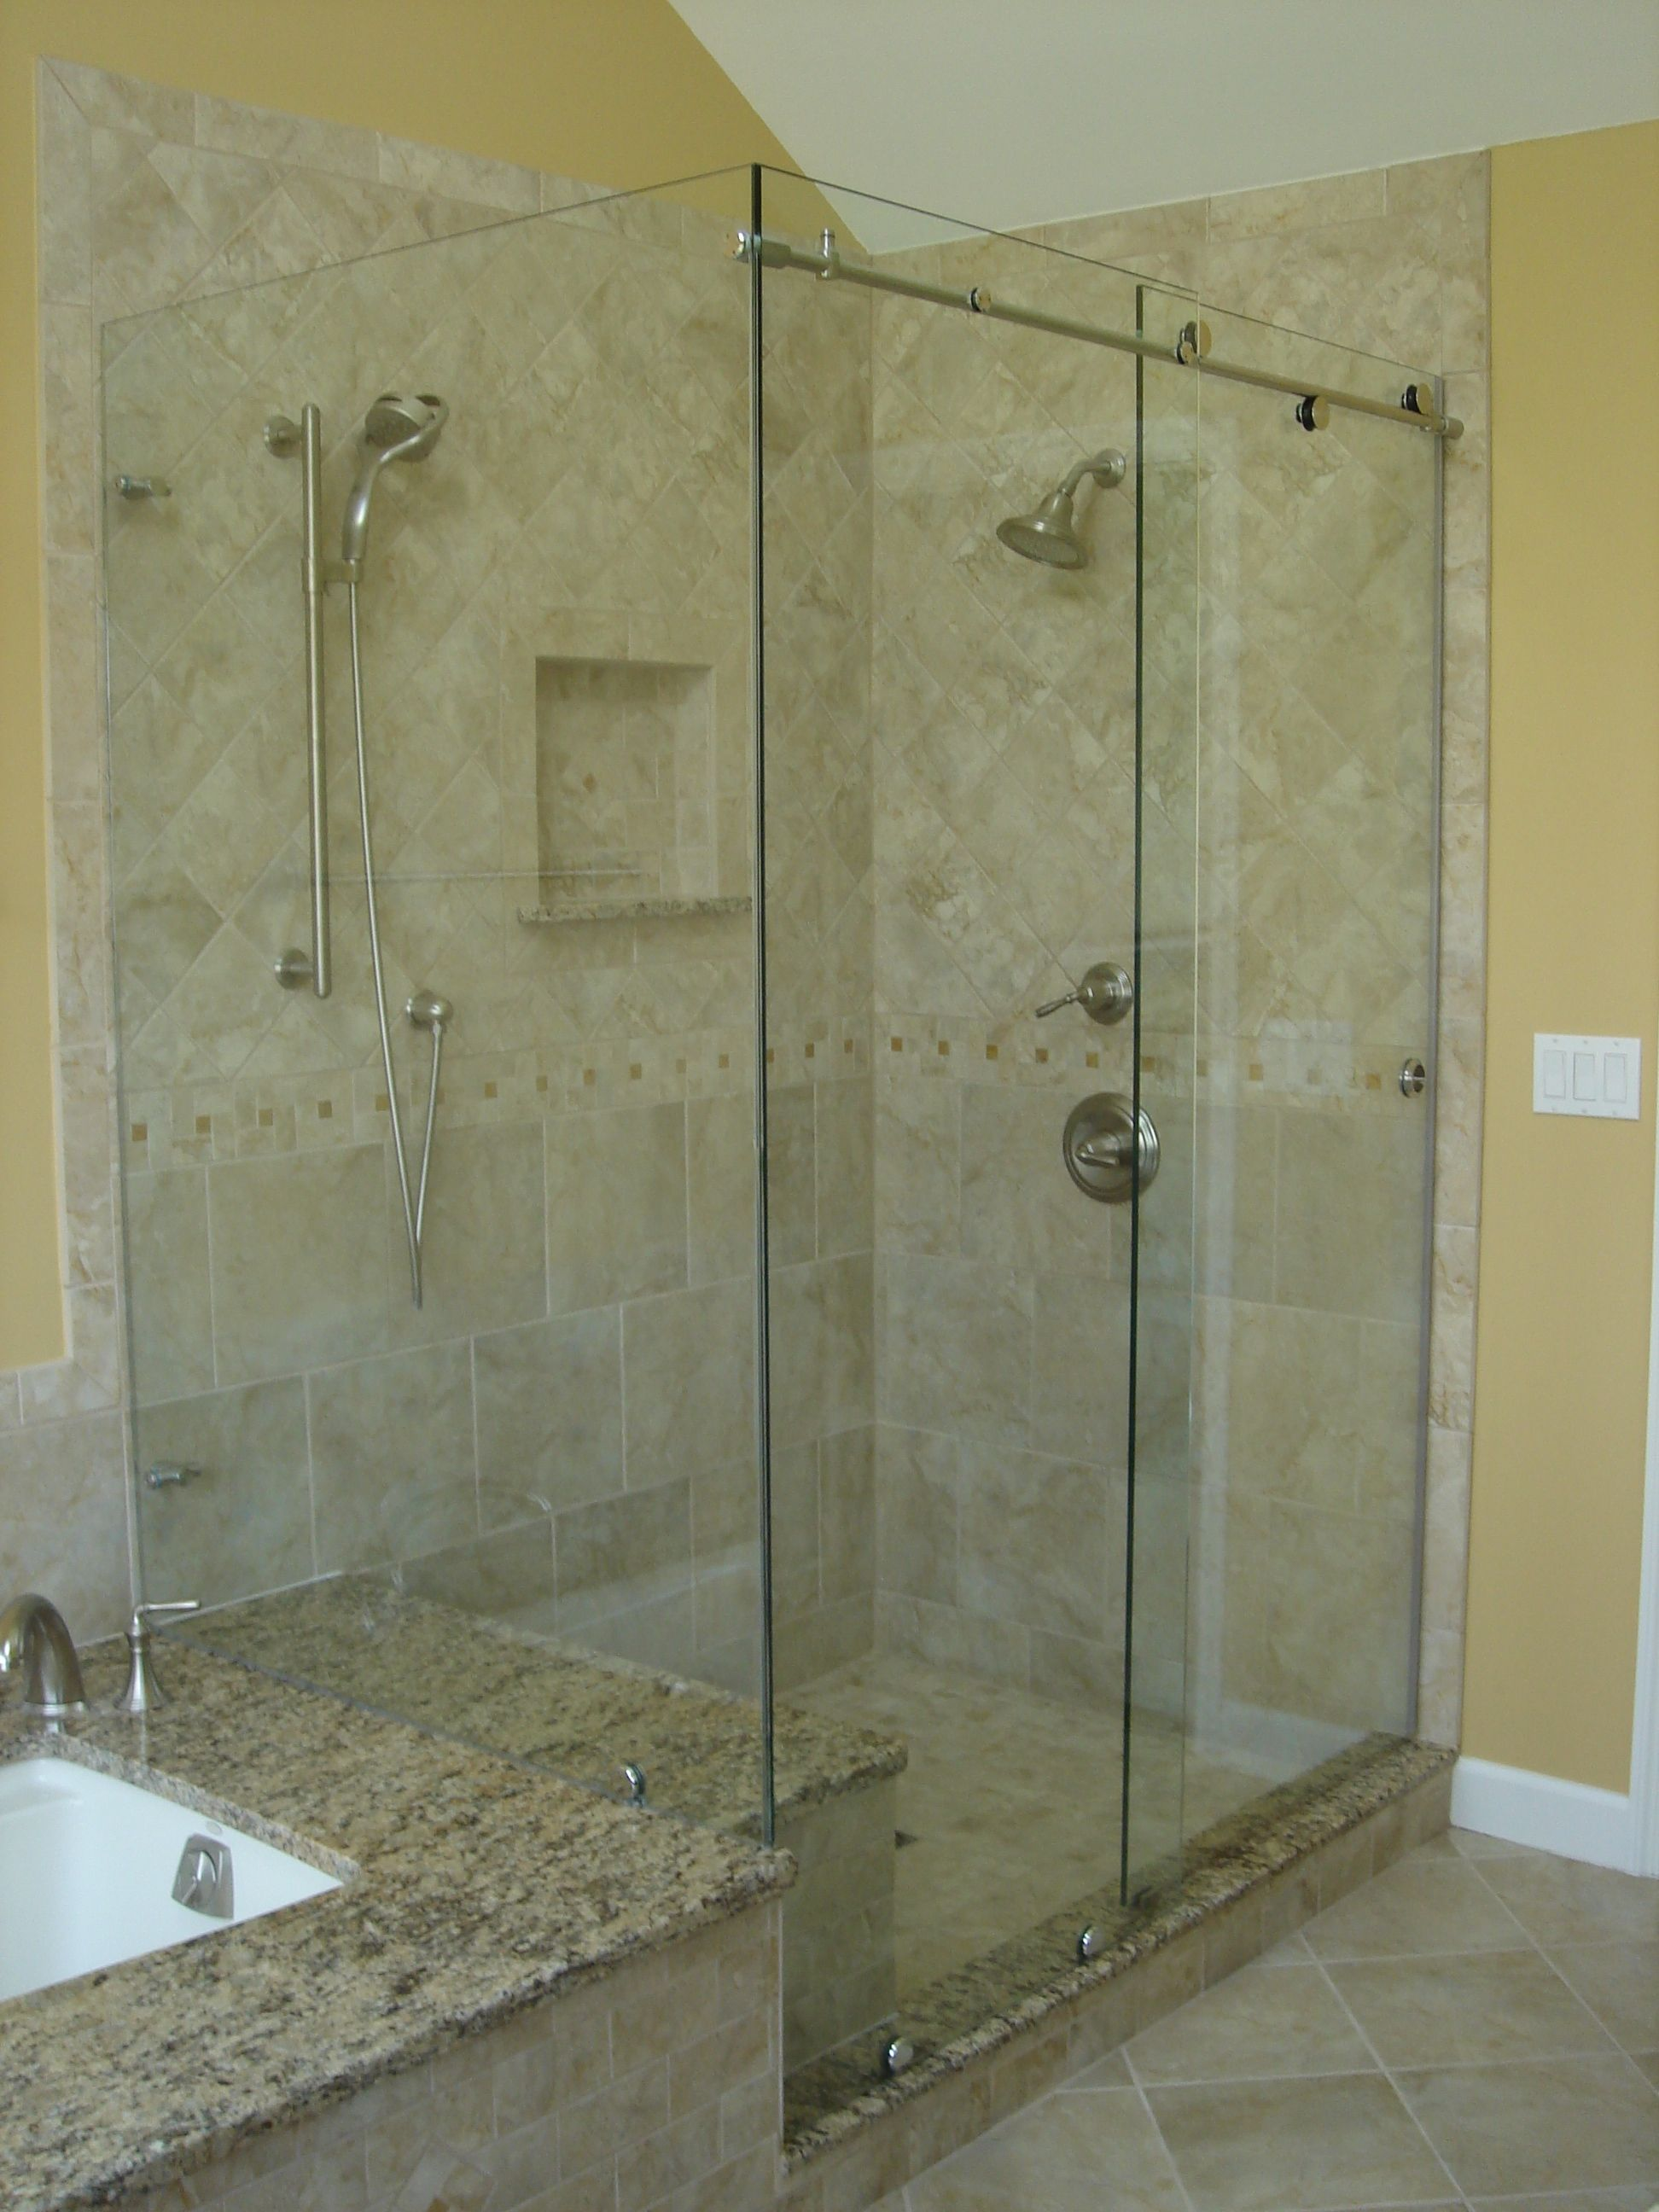 Bathroom shower doors frameless - Glass Shower Doors Frameless New Cardinal Skyline Series Shower Door